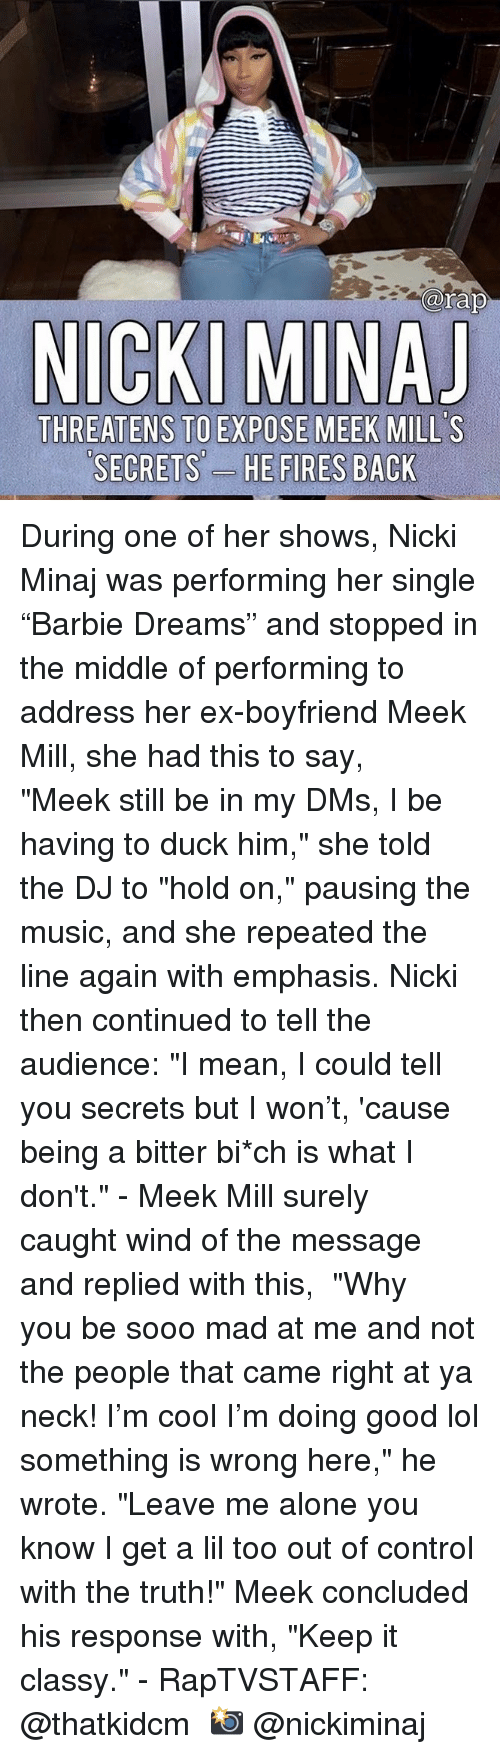 "minaj: arap  THREATENS TO EXPOSE MEEK MILL'S  SECRETS'-  ES During one of her shows, Nicki Minaj was performing her single ""Barbie Dreams"" and stopped in the middle of performing to address her ex-boyfriend Meek Mill, she had this to say, ⁣ ⁣ ""Meek still be in my DMs, I be having to duck him,"" she told the DJ to ""hold on,"" pausing the music, and she repeated the line again with emphasis. Nicki then continued to tell the audience: ""I mean, I could tell you secrets but I won't, 'cause being a bitter bi*ch is what I don't.""⁣ -⁣ Meek Mill surely caught wind of the message and replied with this,⁣ ⁣ ""Why you be sooo mad at me and not the people that came right at ya neck! I'm cool I'm doing good lol something is wrong here,"" he wrote. ""Leave me alone you know I get a lil too out of control with the truth!"" Meek concluded his response with, ""Keep it classy.""⁣ -⁣ RapTVSTAFF: @thatkidcm⁣ 📸 @nickiminaj"